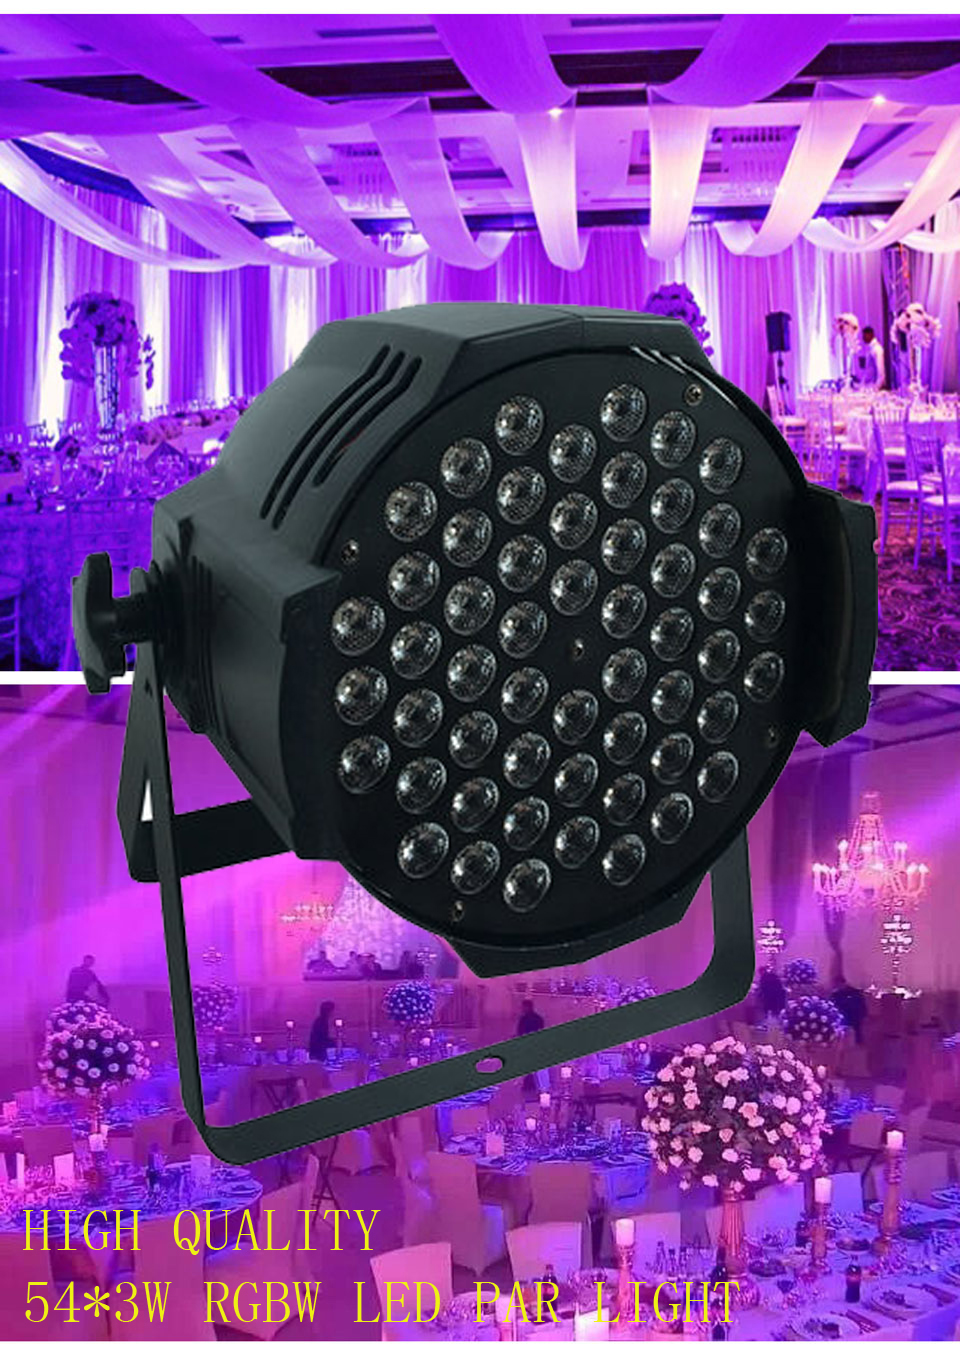 4X LOT High Quality CE Approved RGBW 54*3W LED Par Light Stage Par64 Light High Quality DMX LED LIGHT Aluminum LED Par Can free shipping 16 lot dmx 18x10w rgbw led par can light for stage decoration